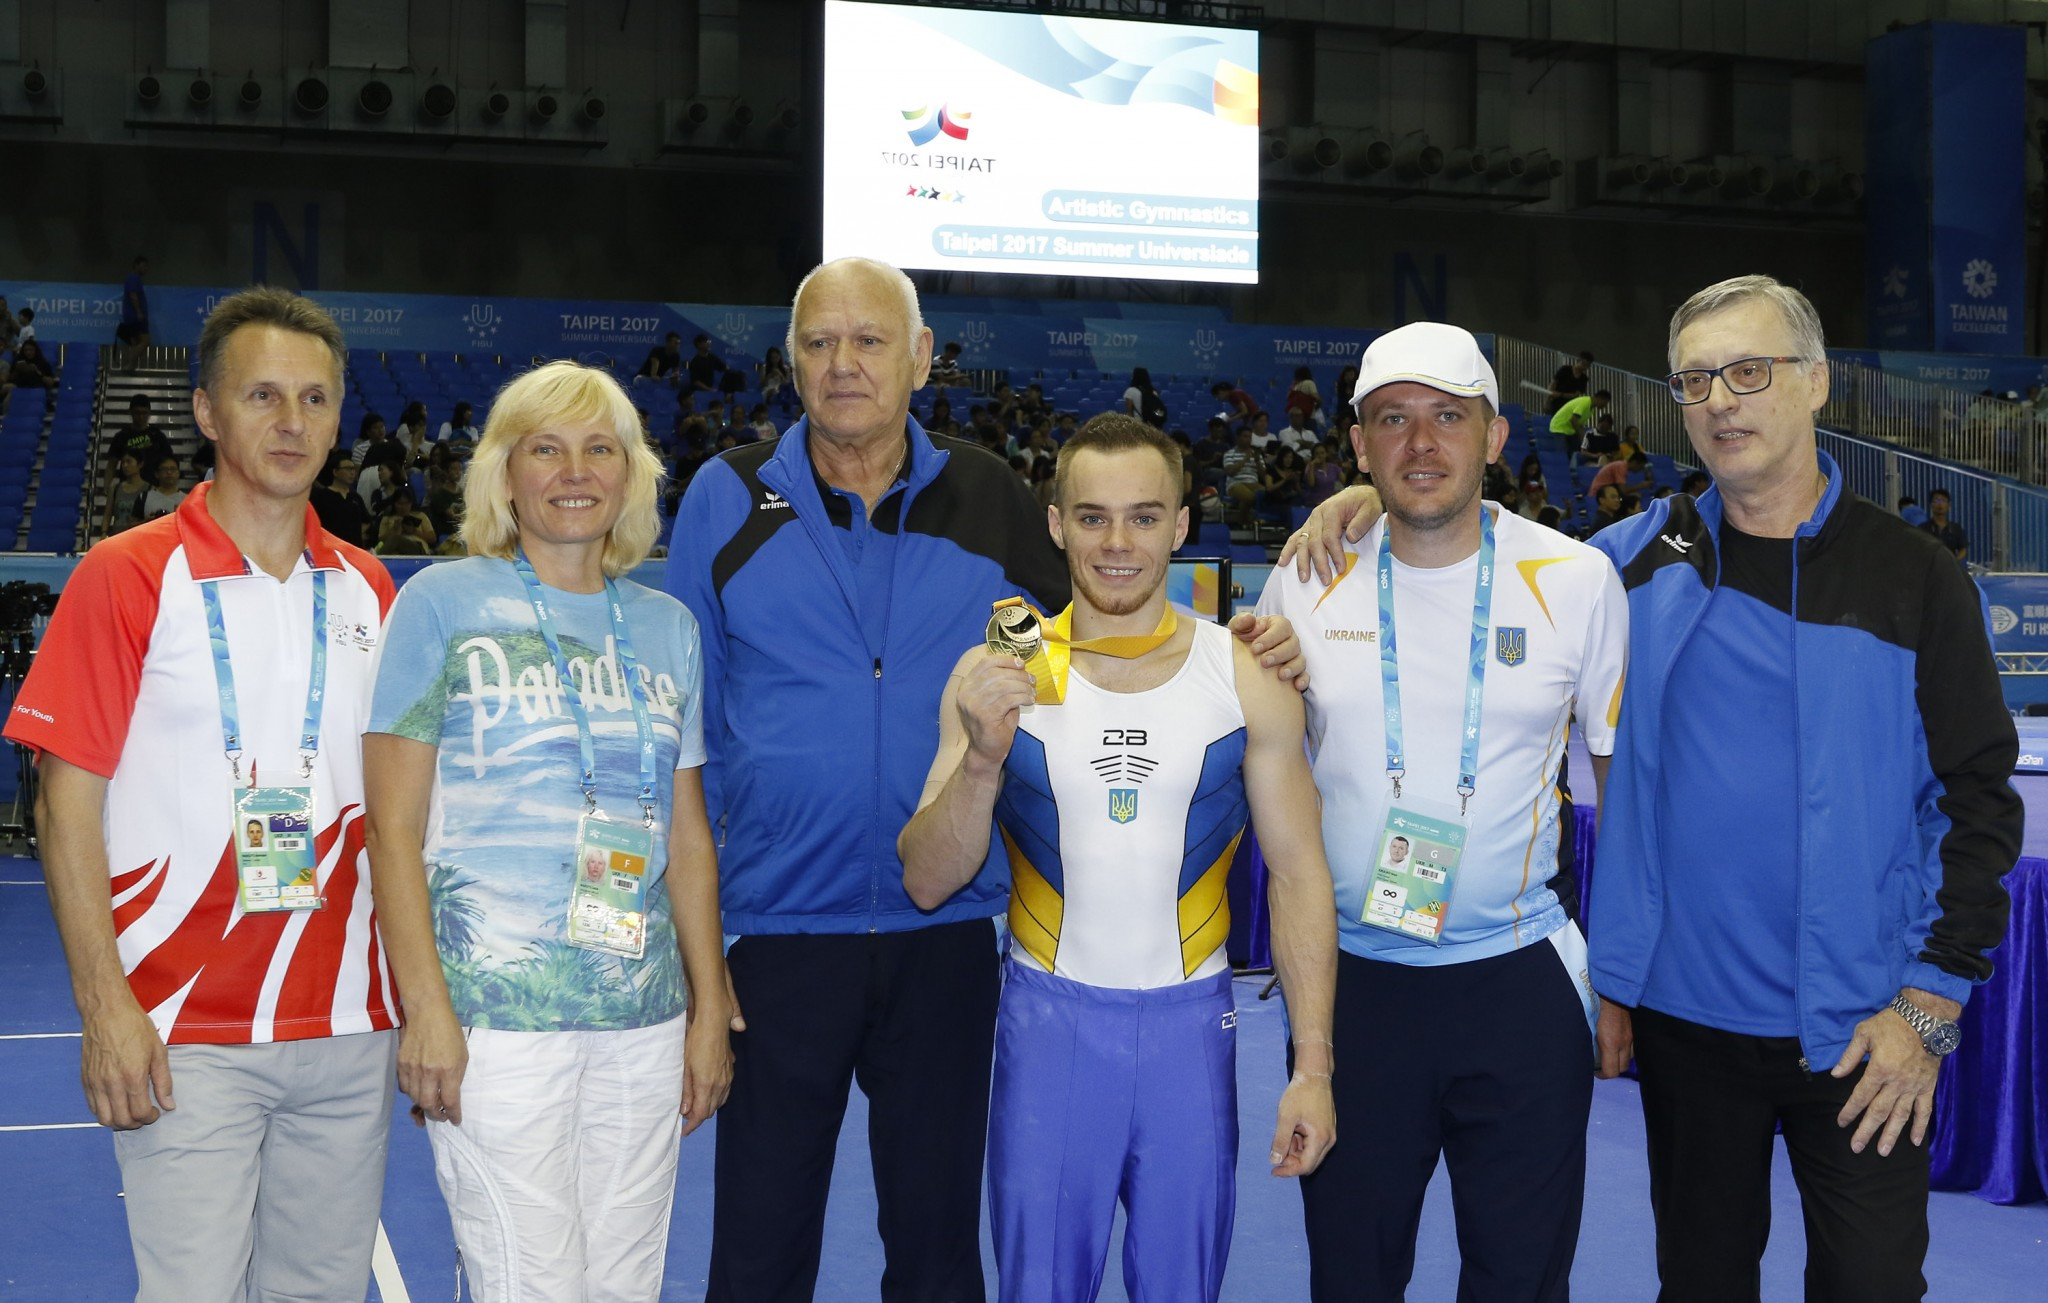 Olympic silver medallist Verniaiev defends individual all-round title at Taipei 2017